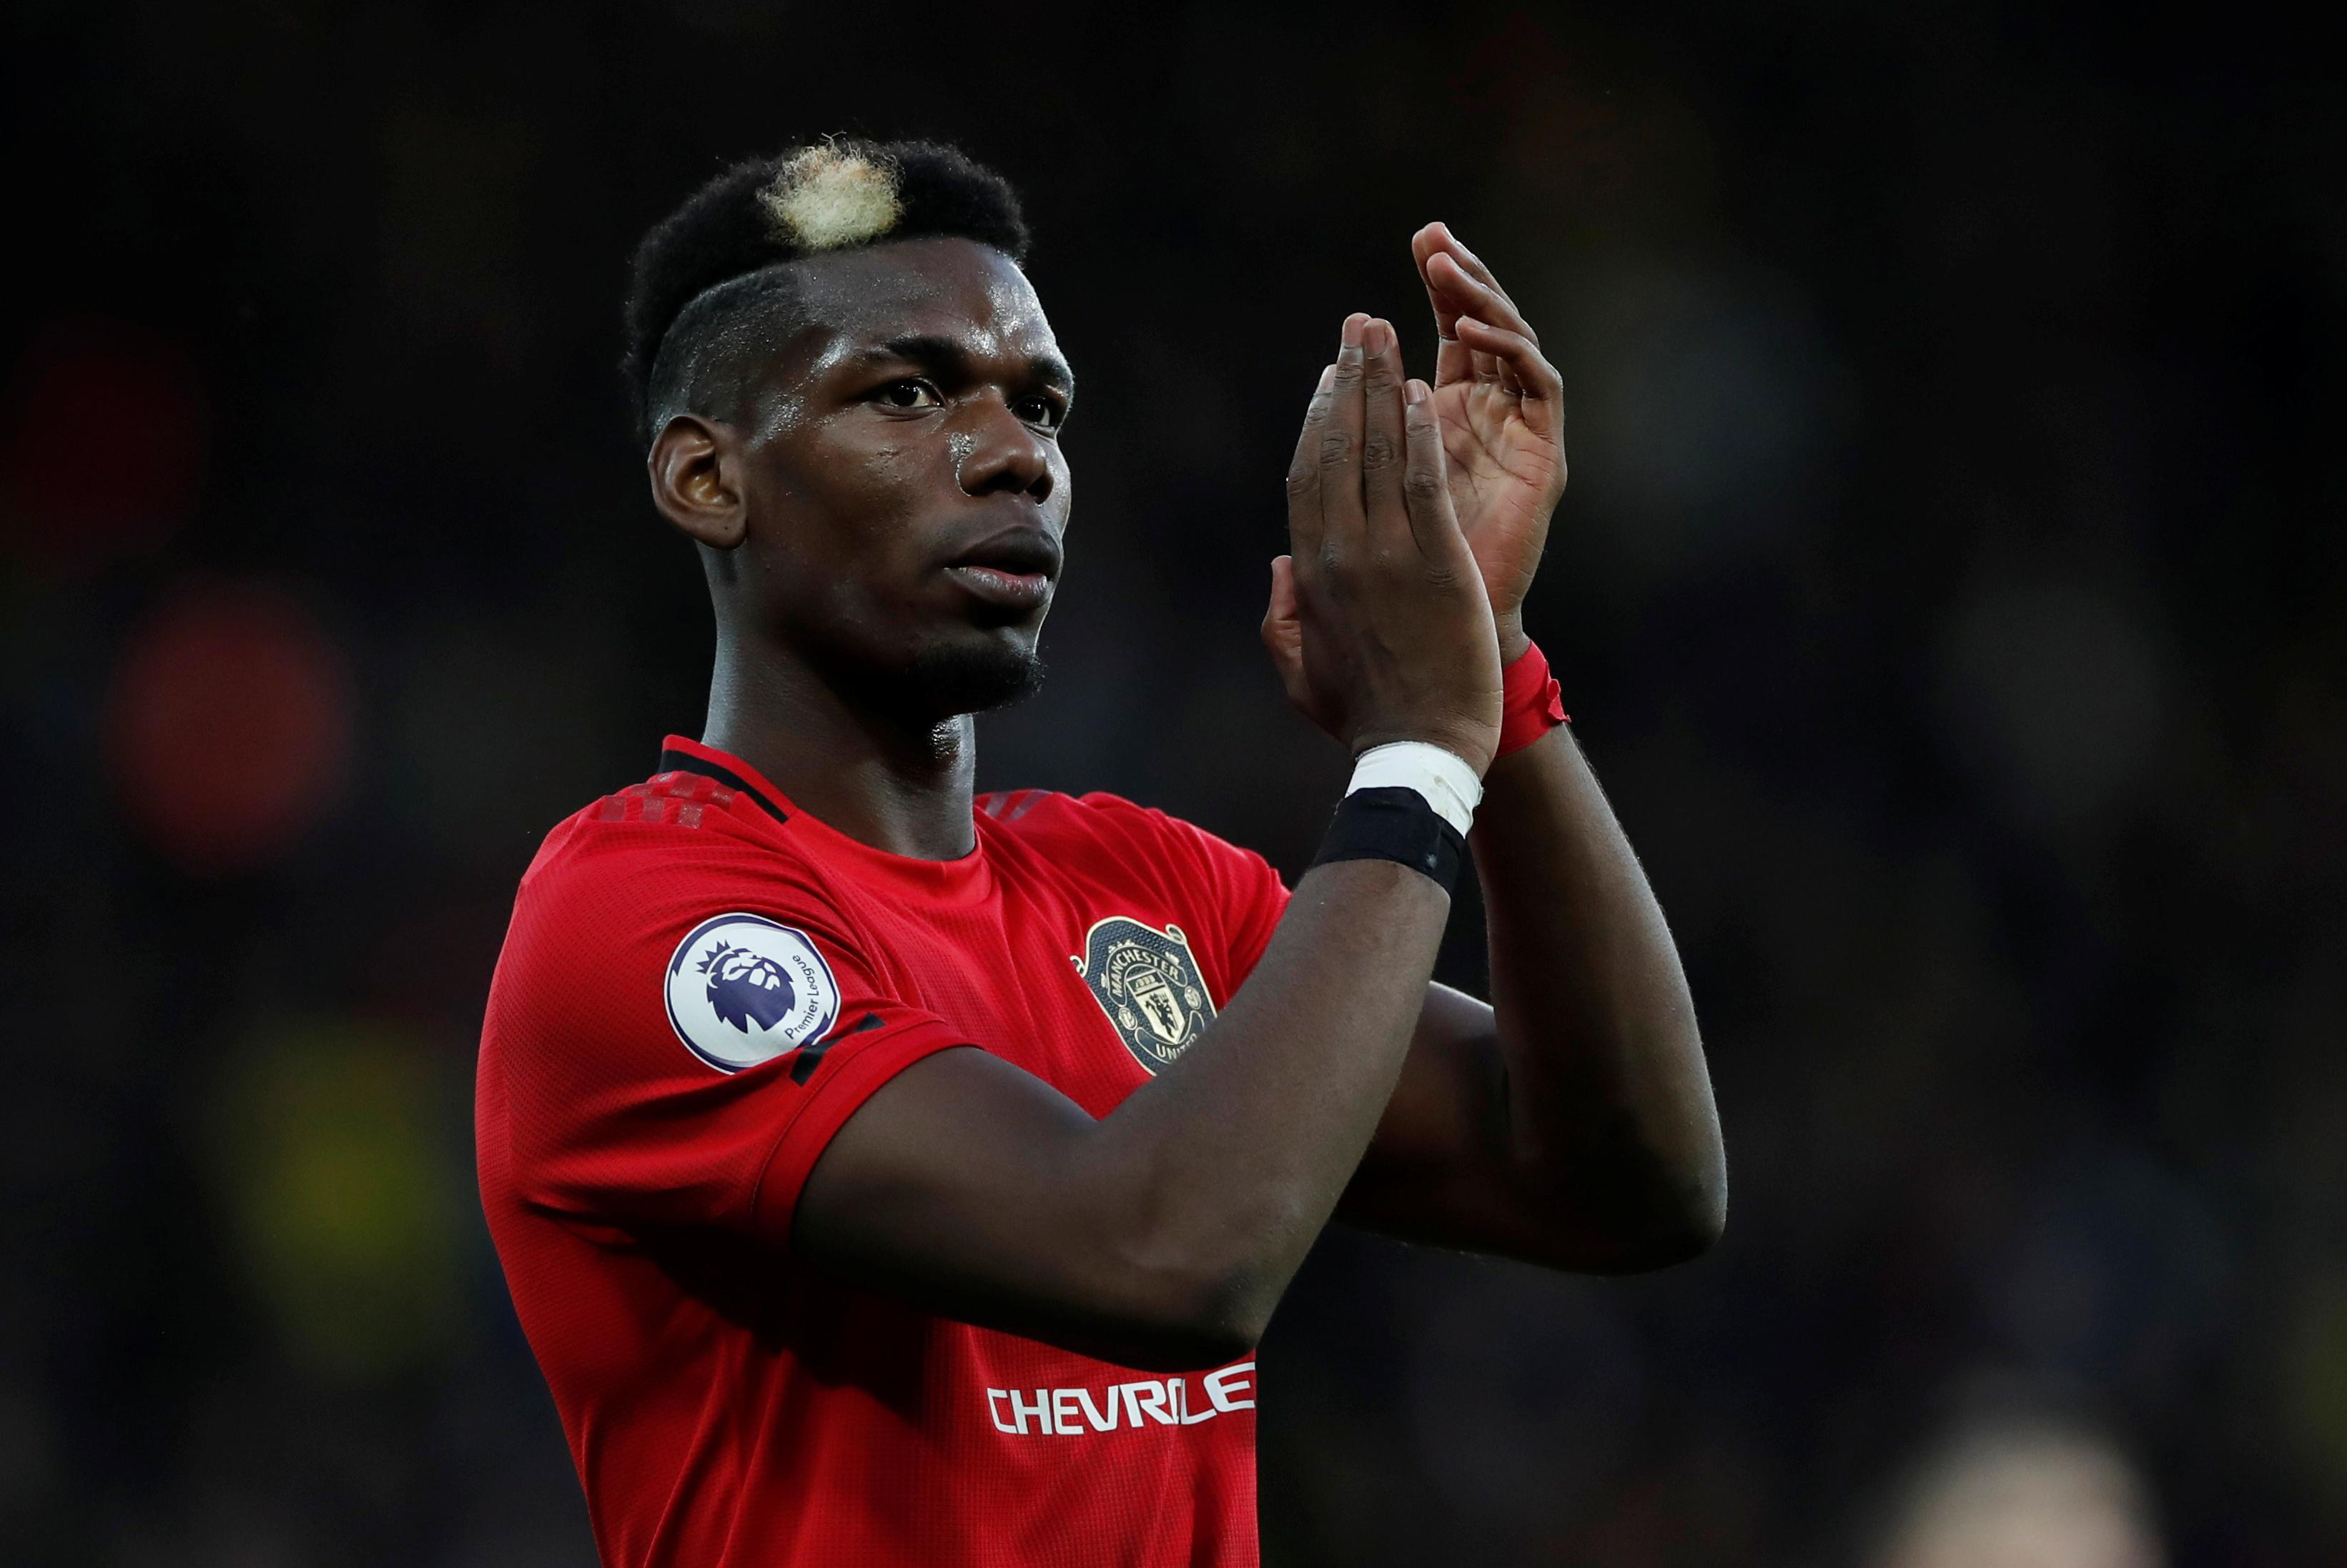 Man Utd's Pogba 'desperate' to play, says Solskjaer